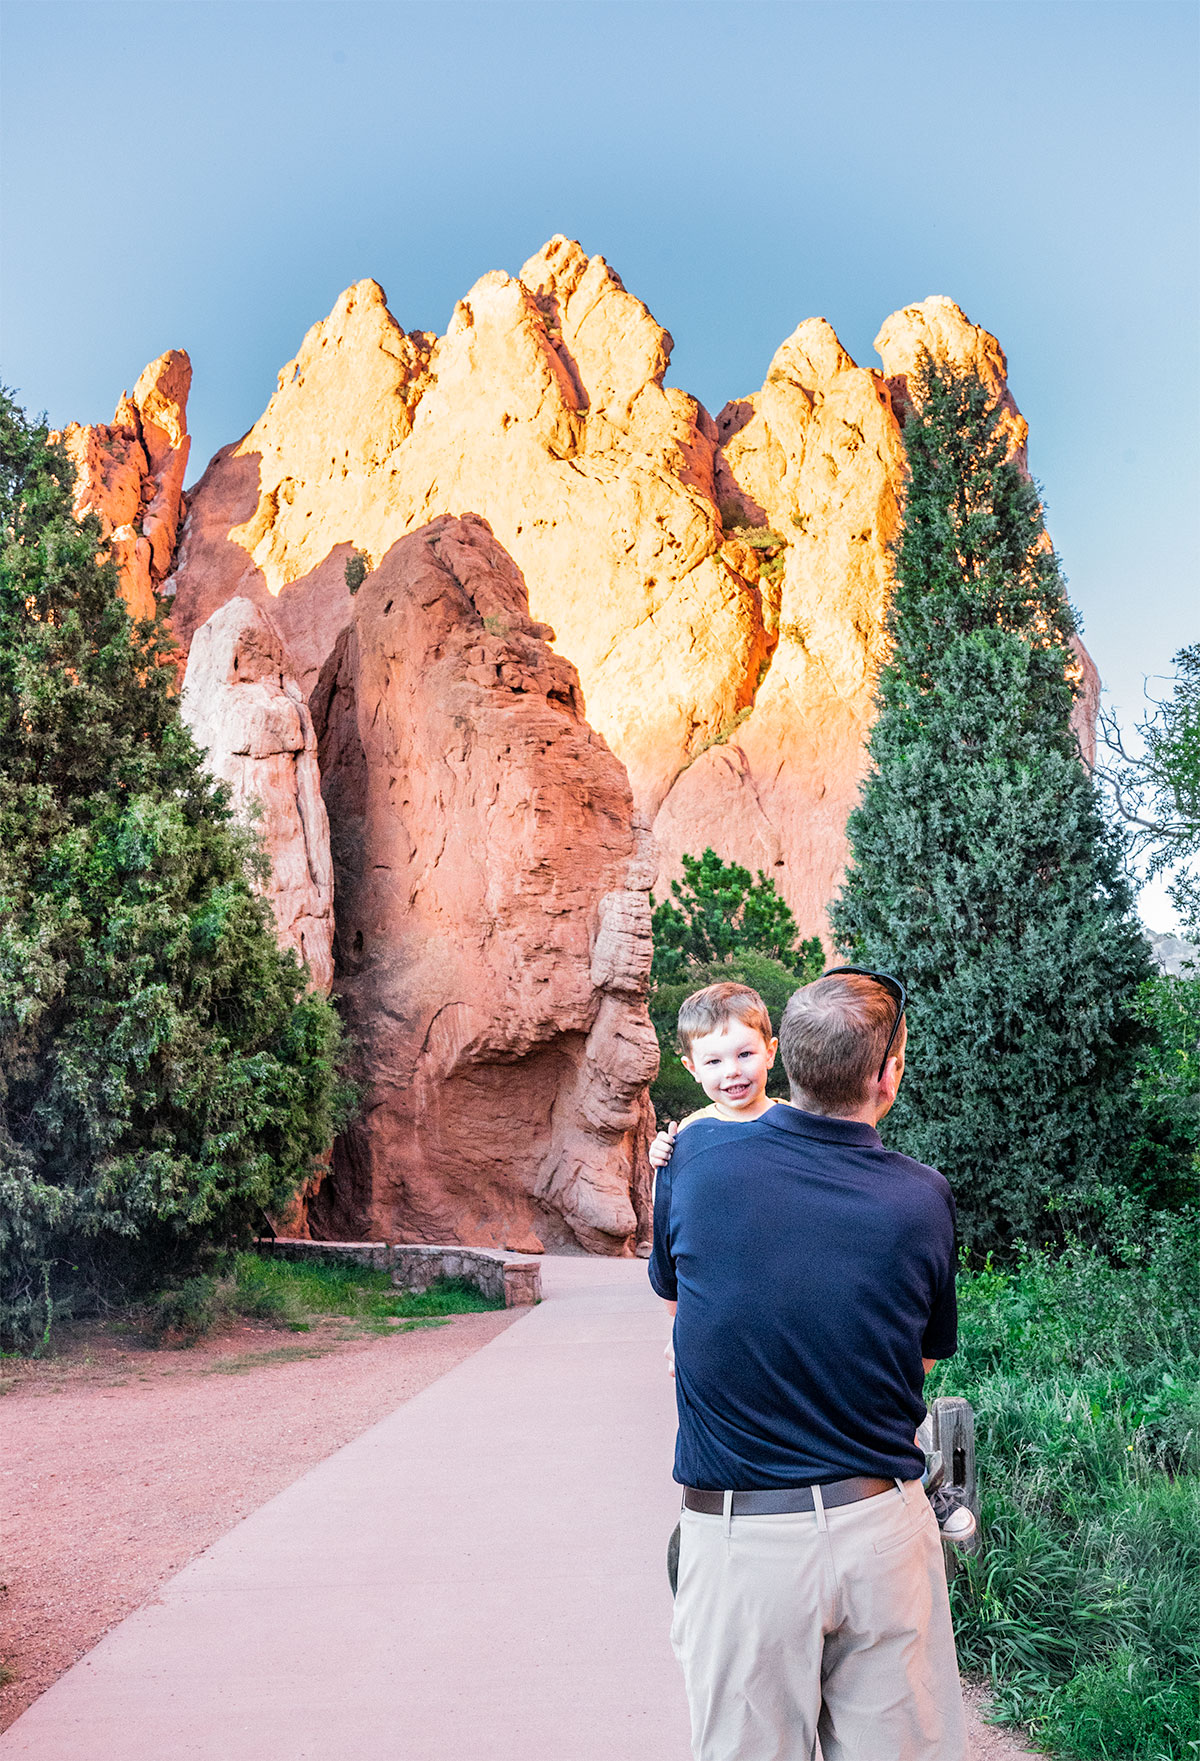 The-One-Kid-Friendly-Site-Families-MUST-See-In-Colorado-Springs